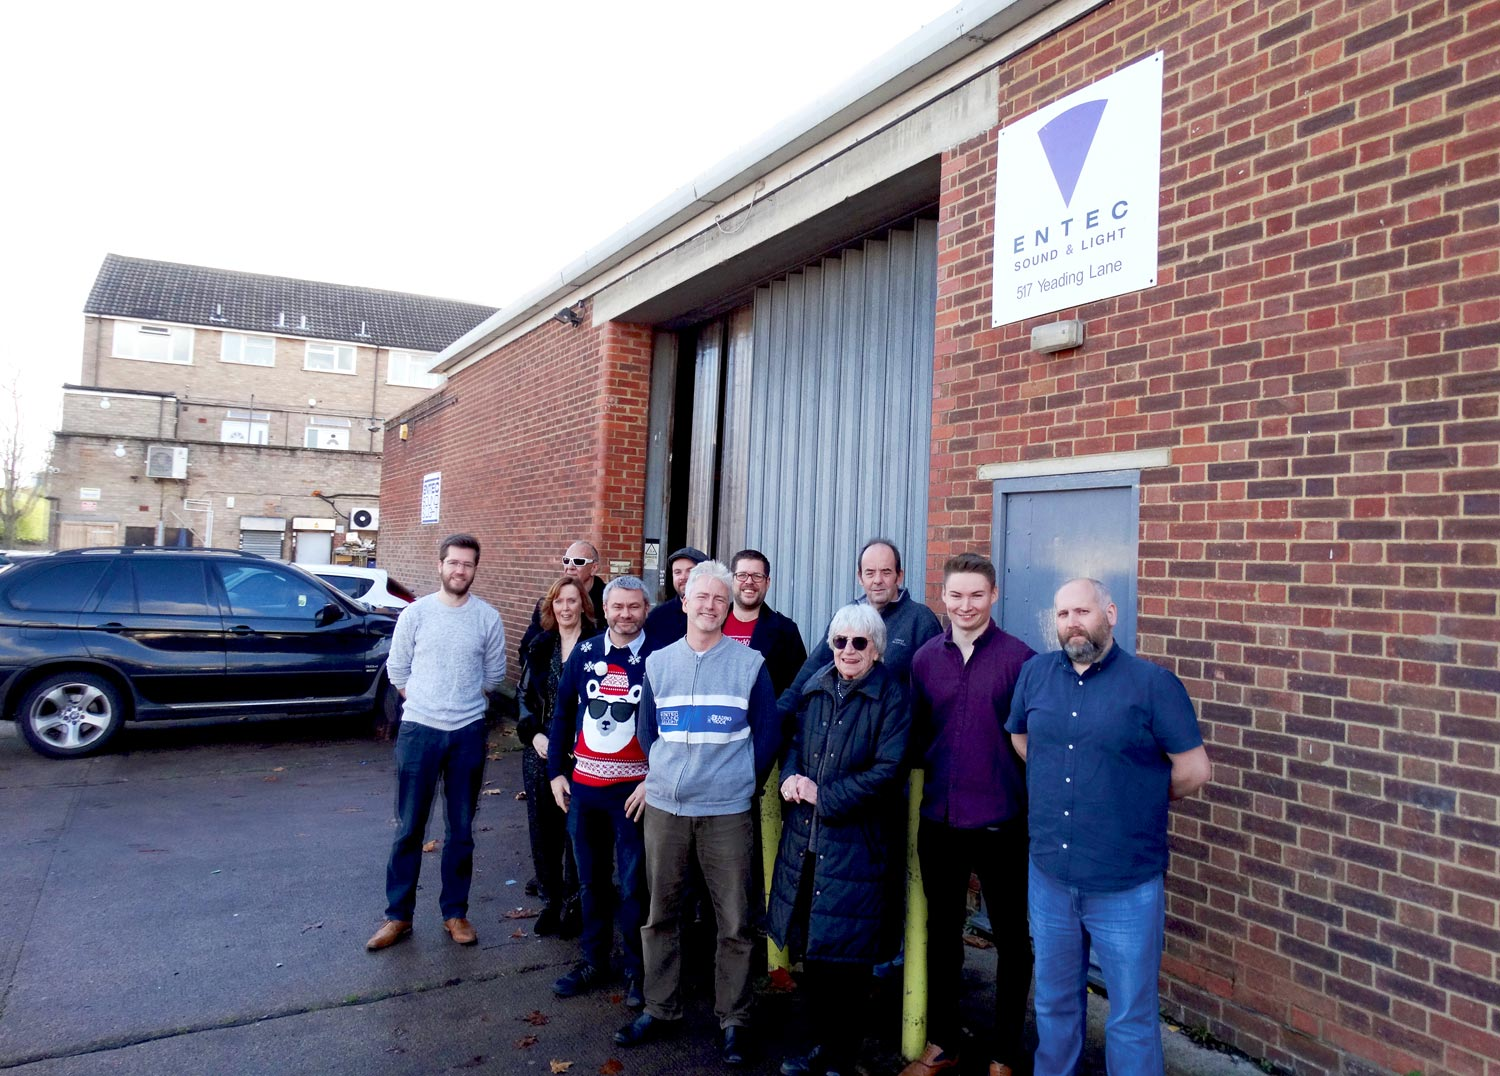 Entec staff and directors gather outside the main Northolt building.